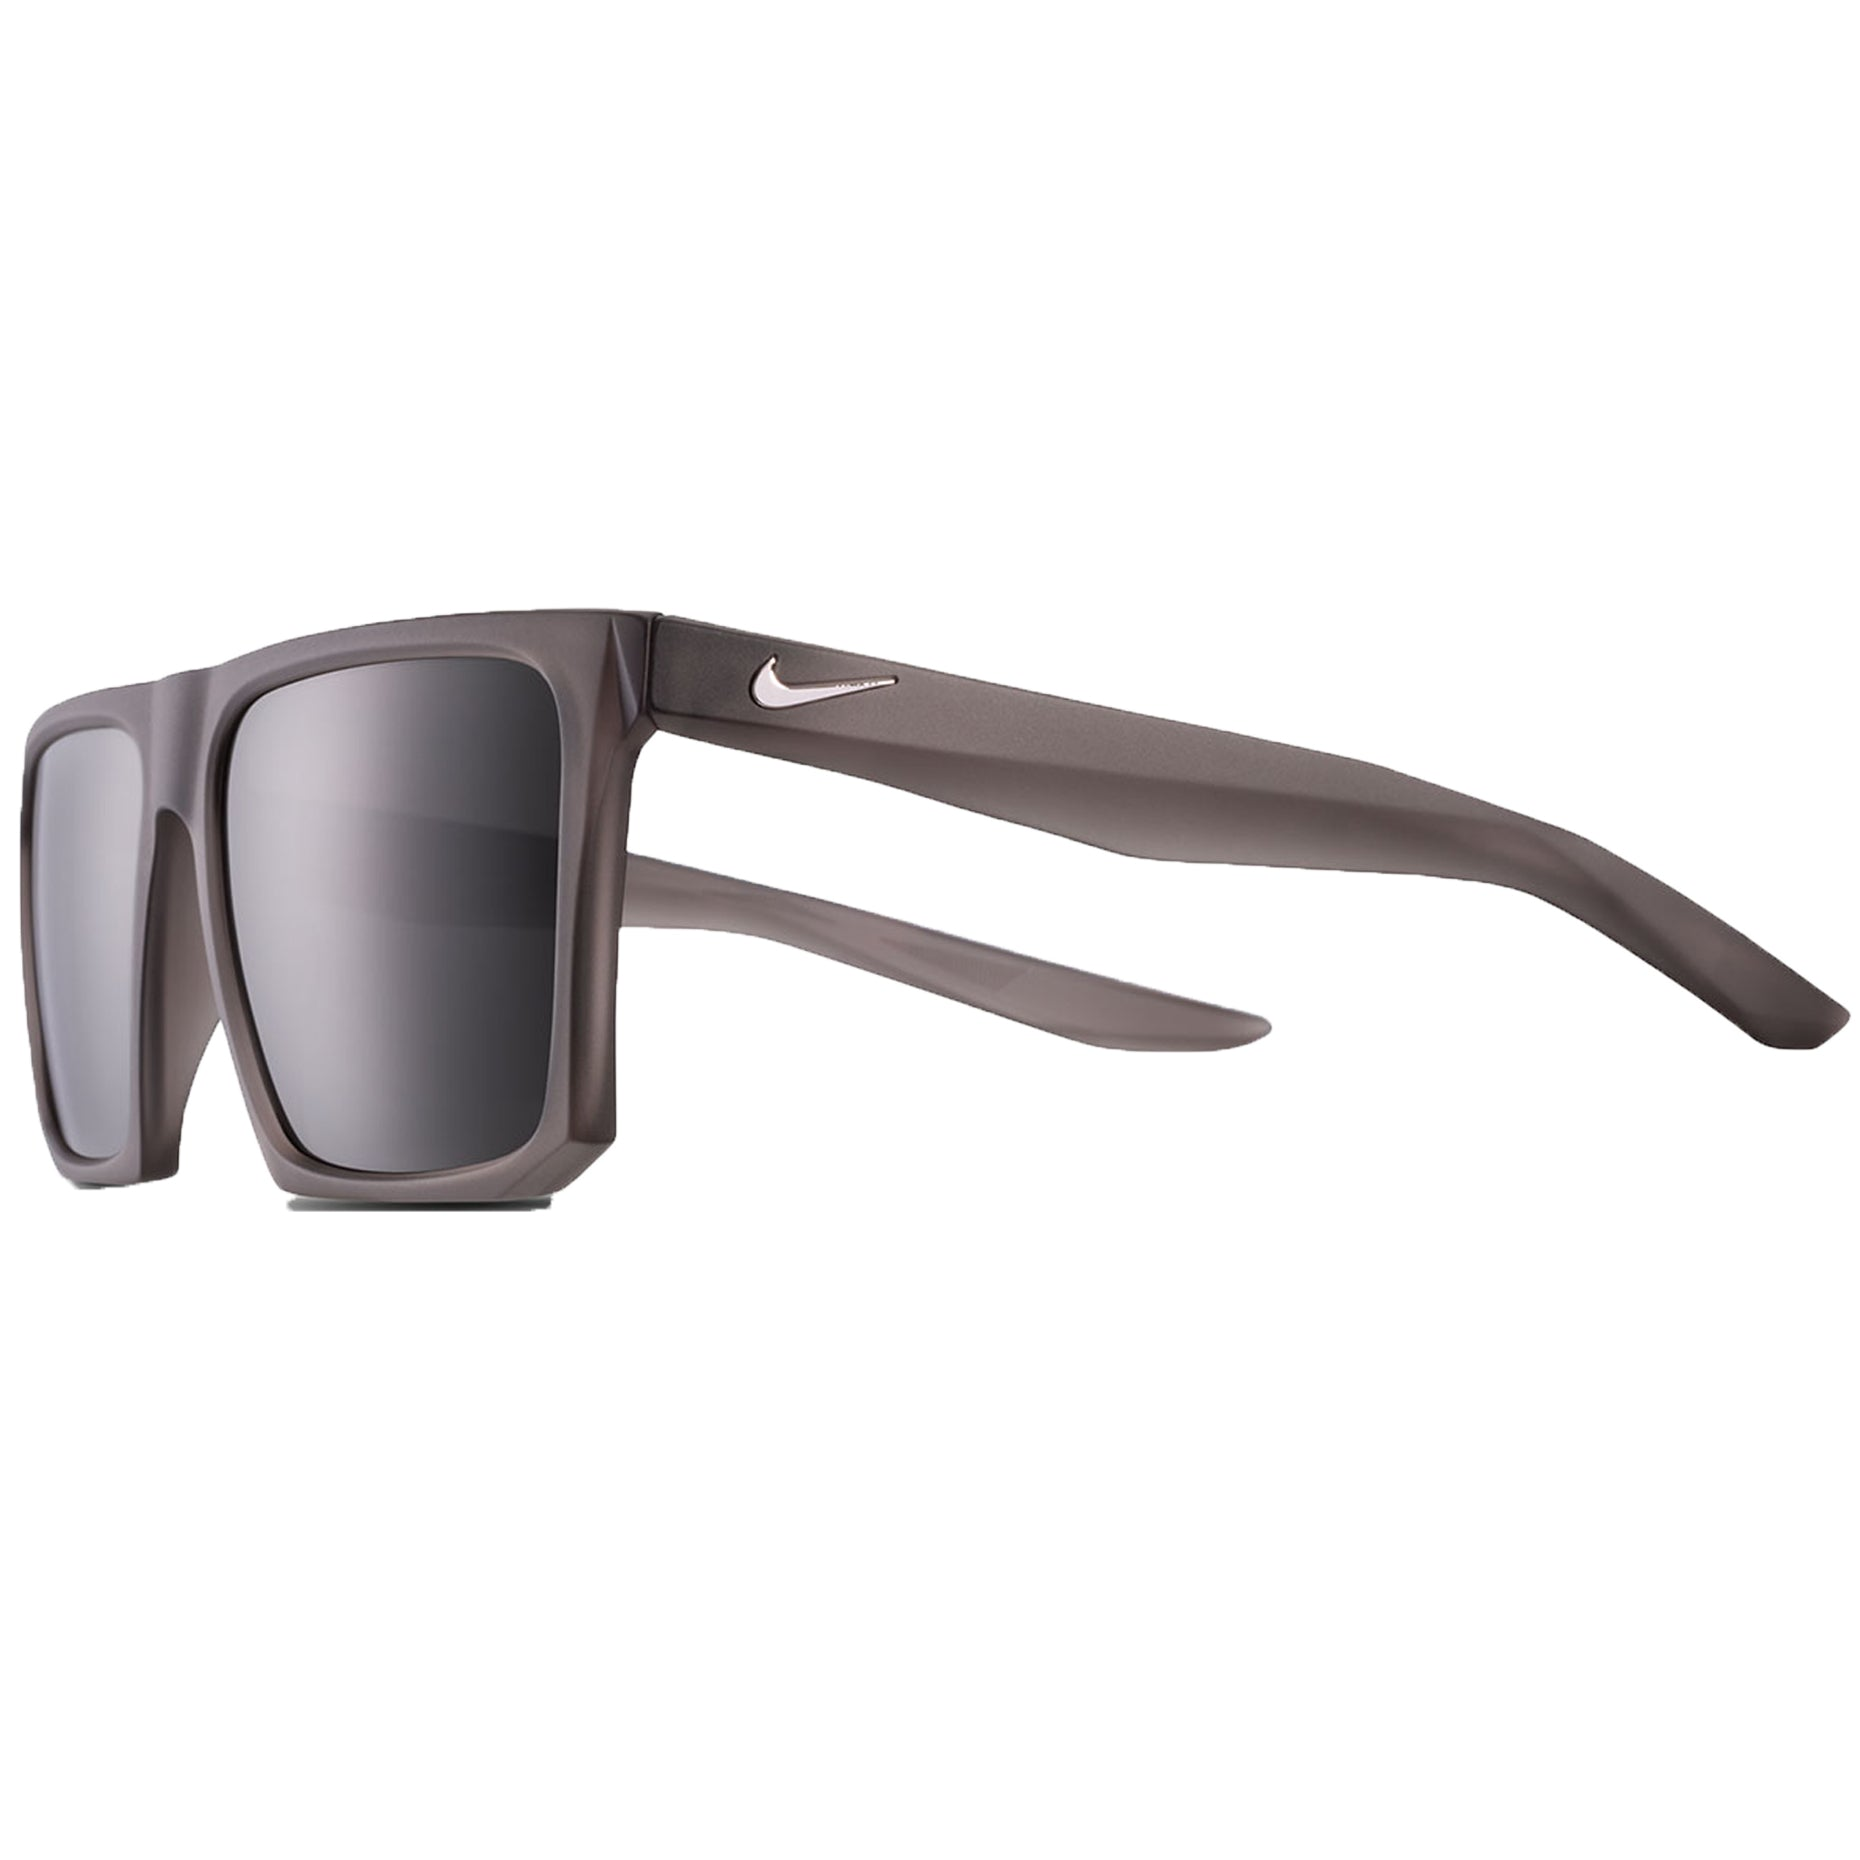 Ledge Matte gunsmoke Gunmetal/Dark Grey lens